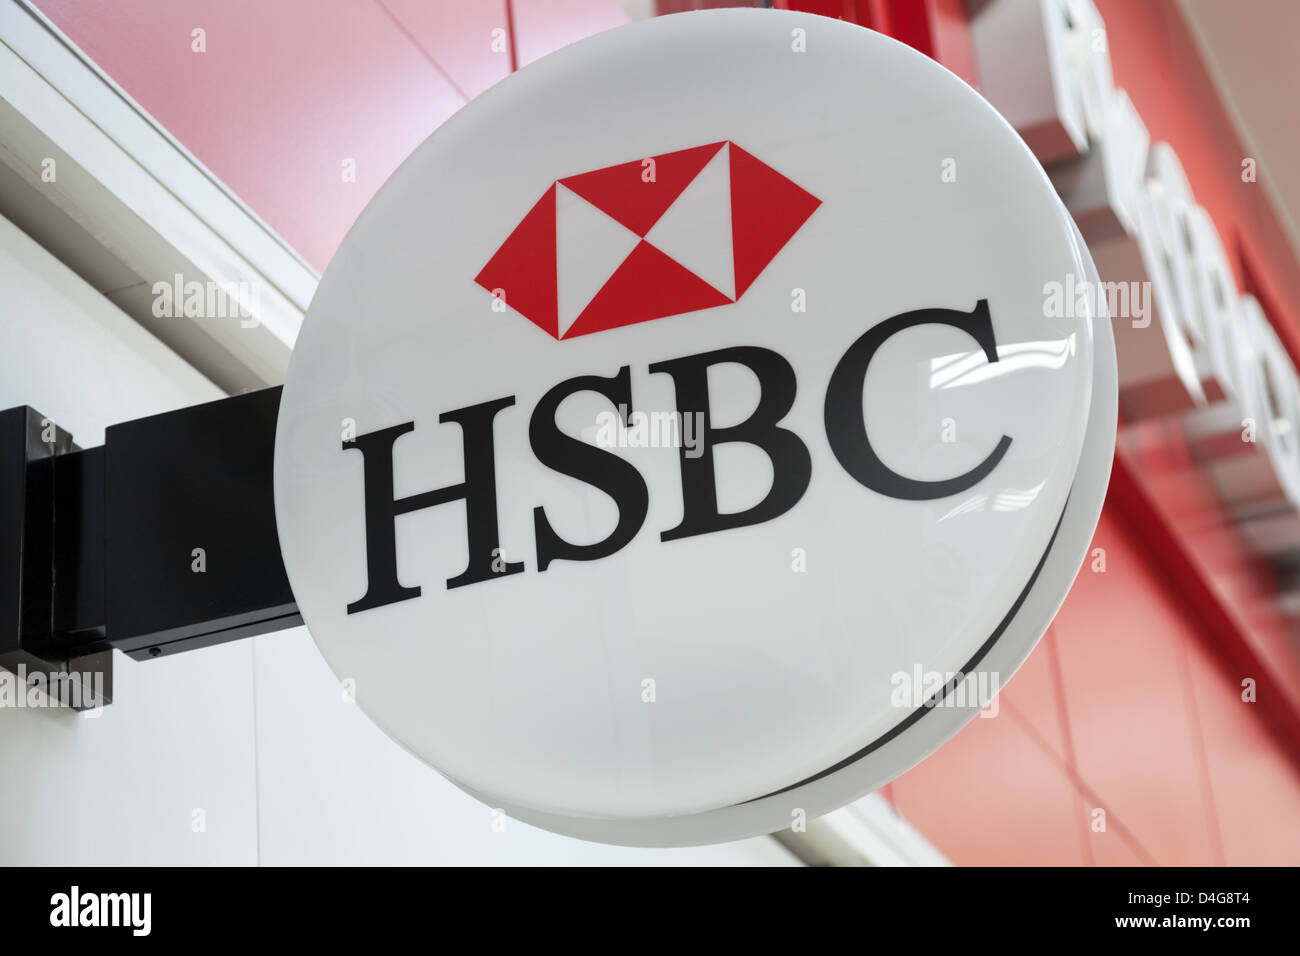 A general view of the logo outside a HSBC (Hong Kong Shanghai Banking Corporation) branch in Basingstoke, Hampshire. - Stock Image